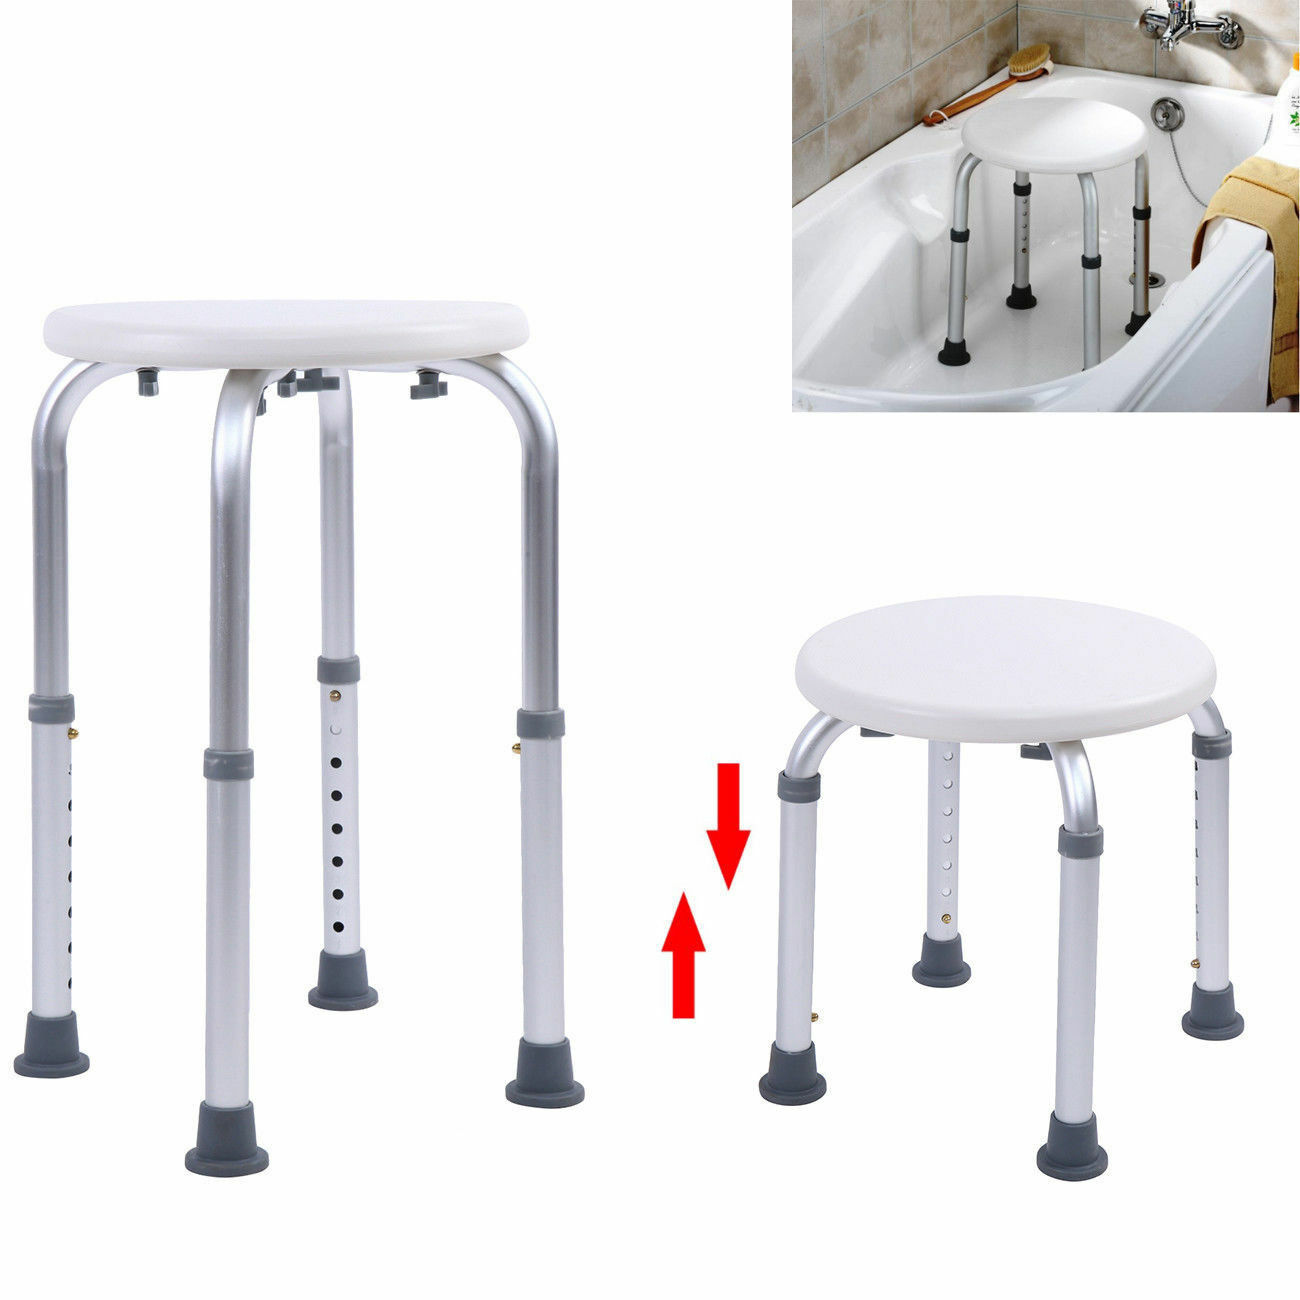 Us 34 17 9 Off Shower Chair Bath Seat Adjustable Medical Safety Aluminum Stool Seating Toilet Shower Chairs Kids Bed Shower Chair In Bathroom Chairs